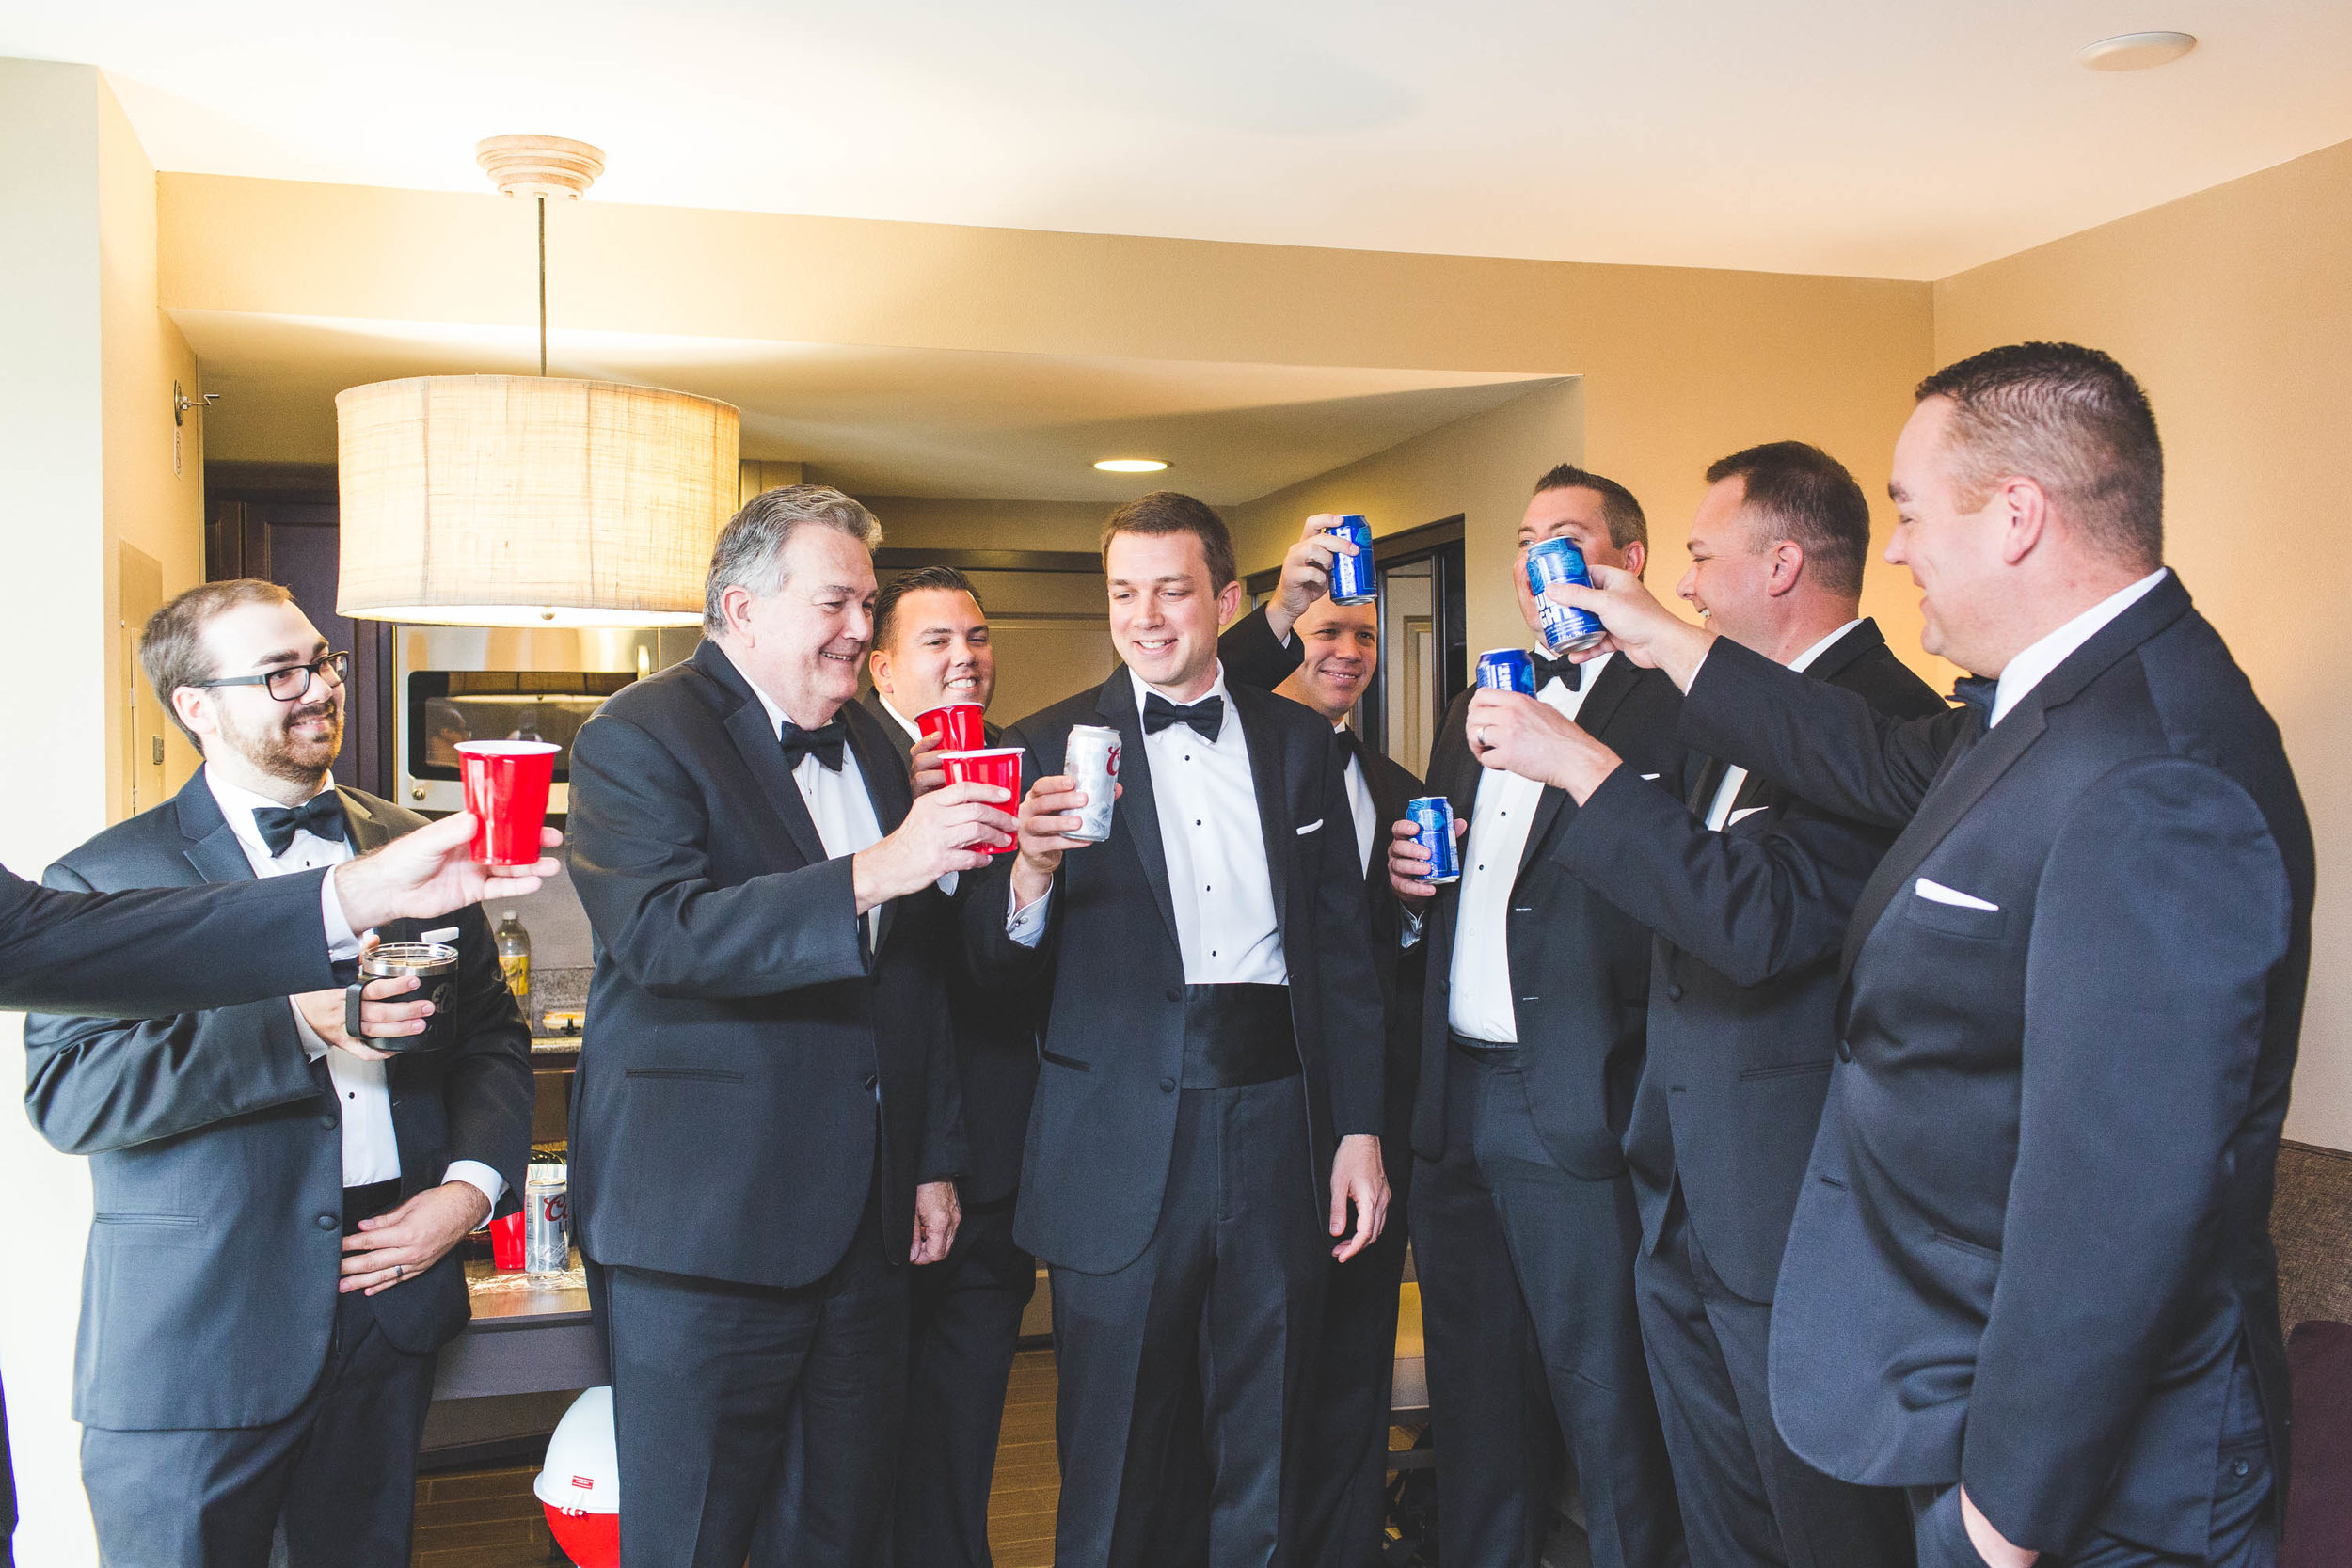 grooms party toasting to the upcoming wedding day in a hotel room